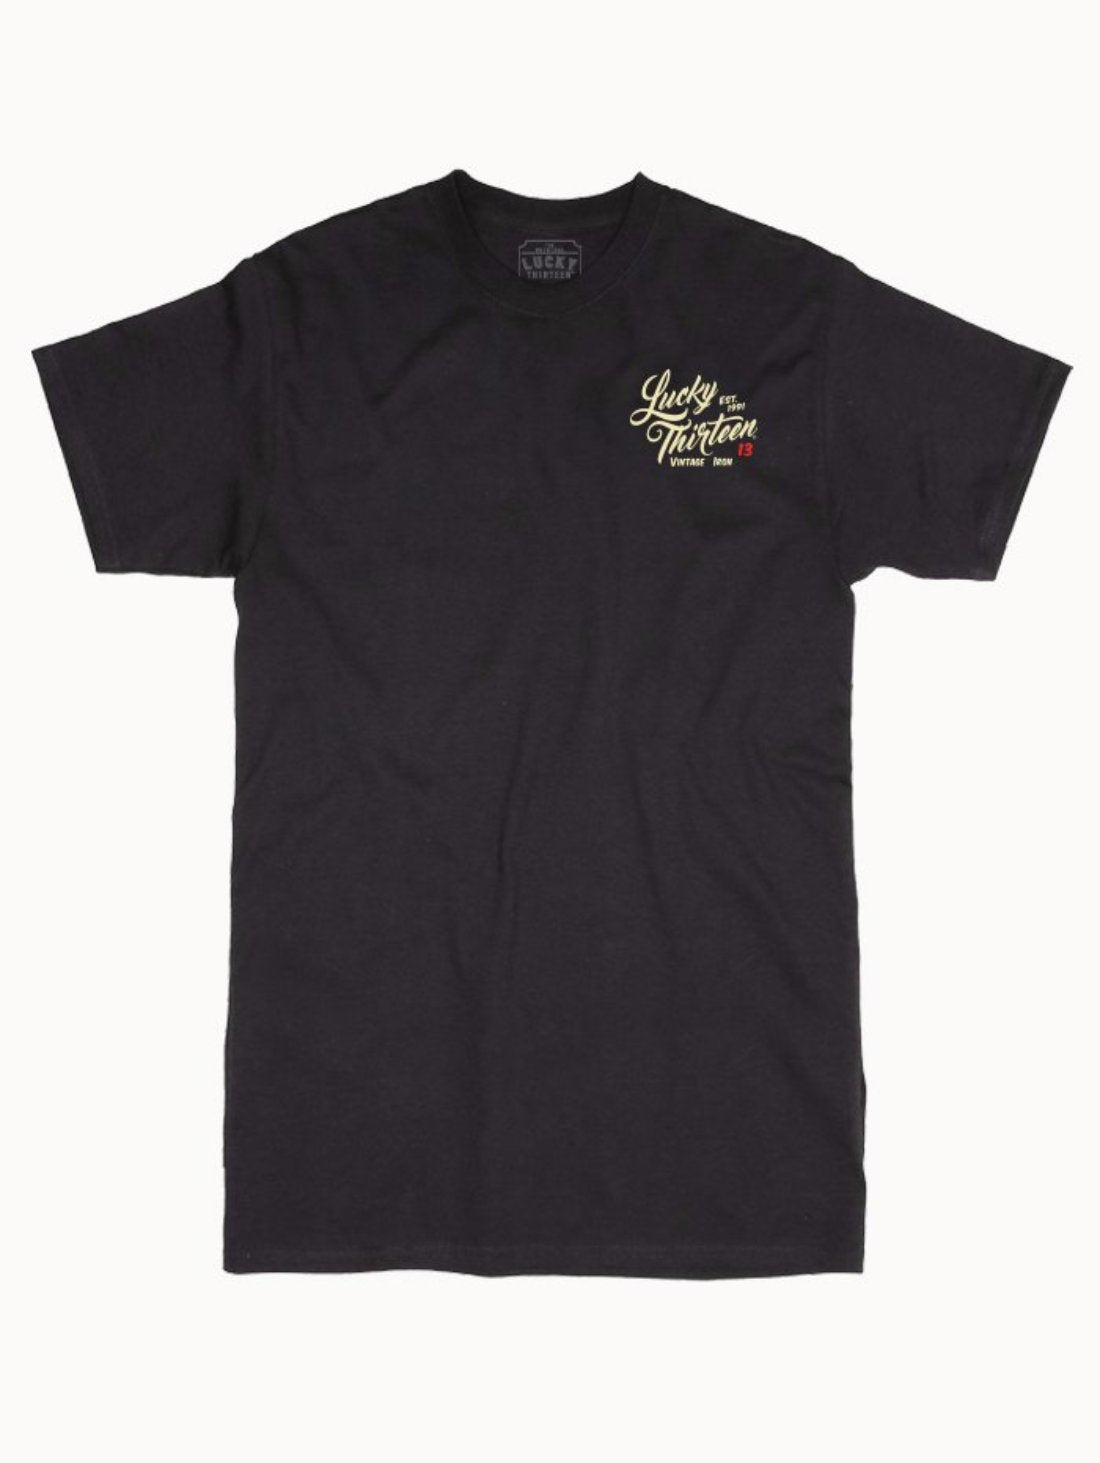 The VINTAGE IRON Tee Shirt